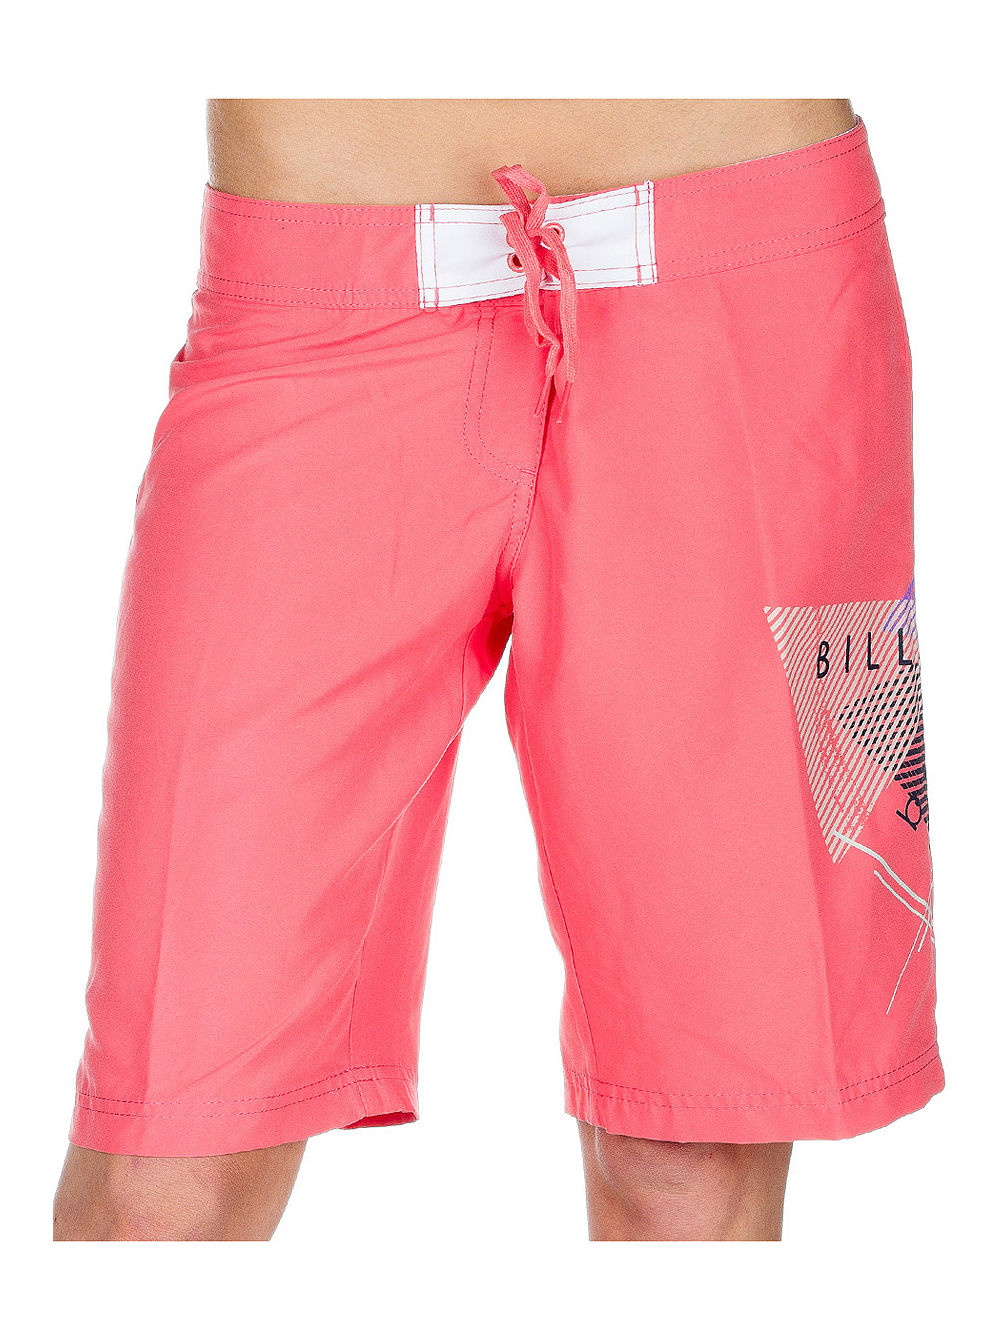 Kiana 45 Boardshort Women